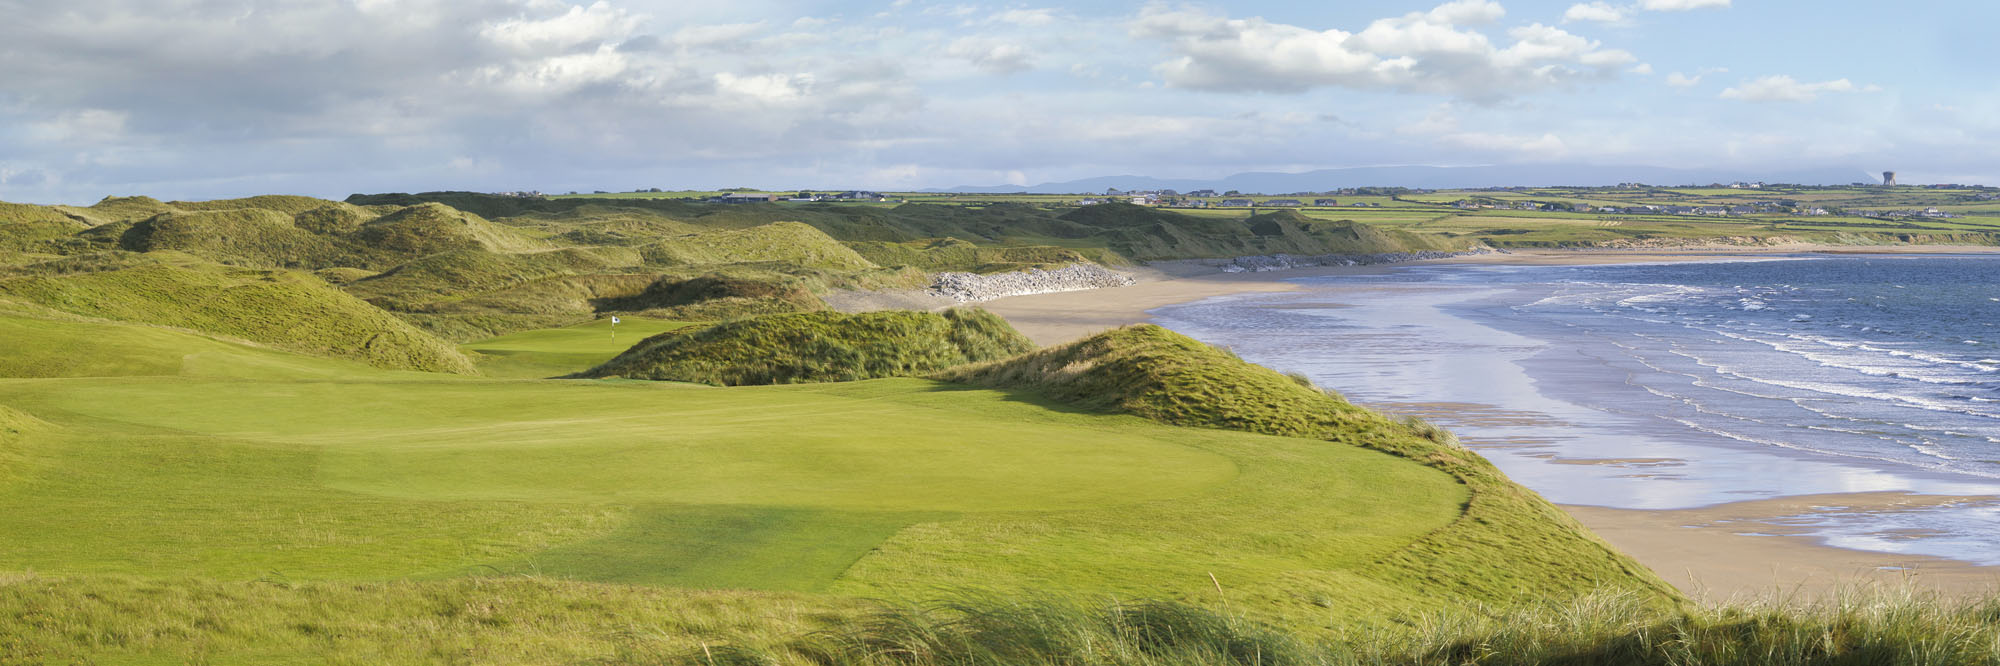 Golf Course Image - Ballybunion No. 11